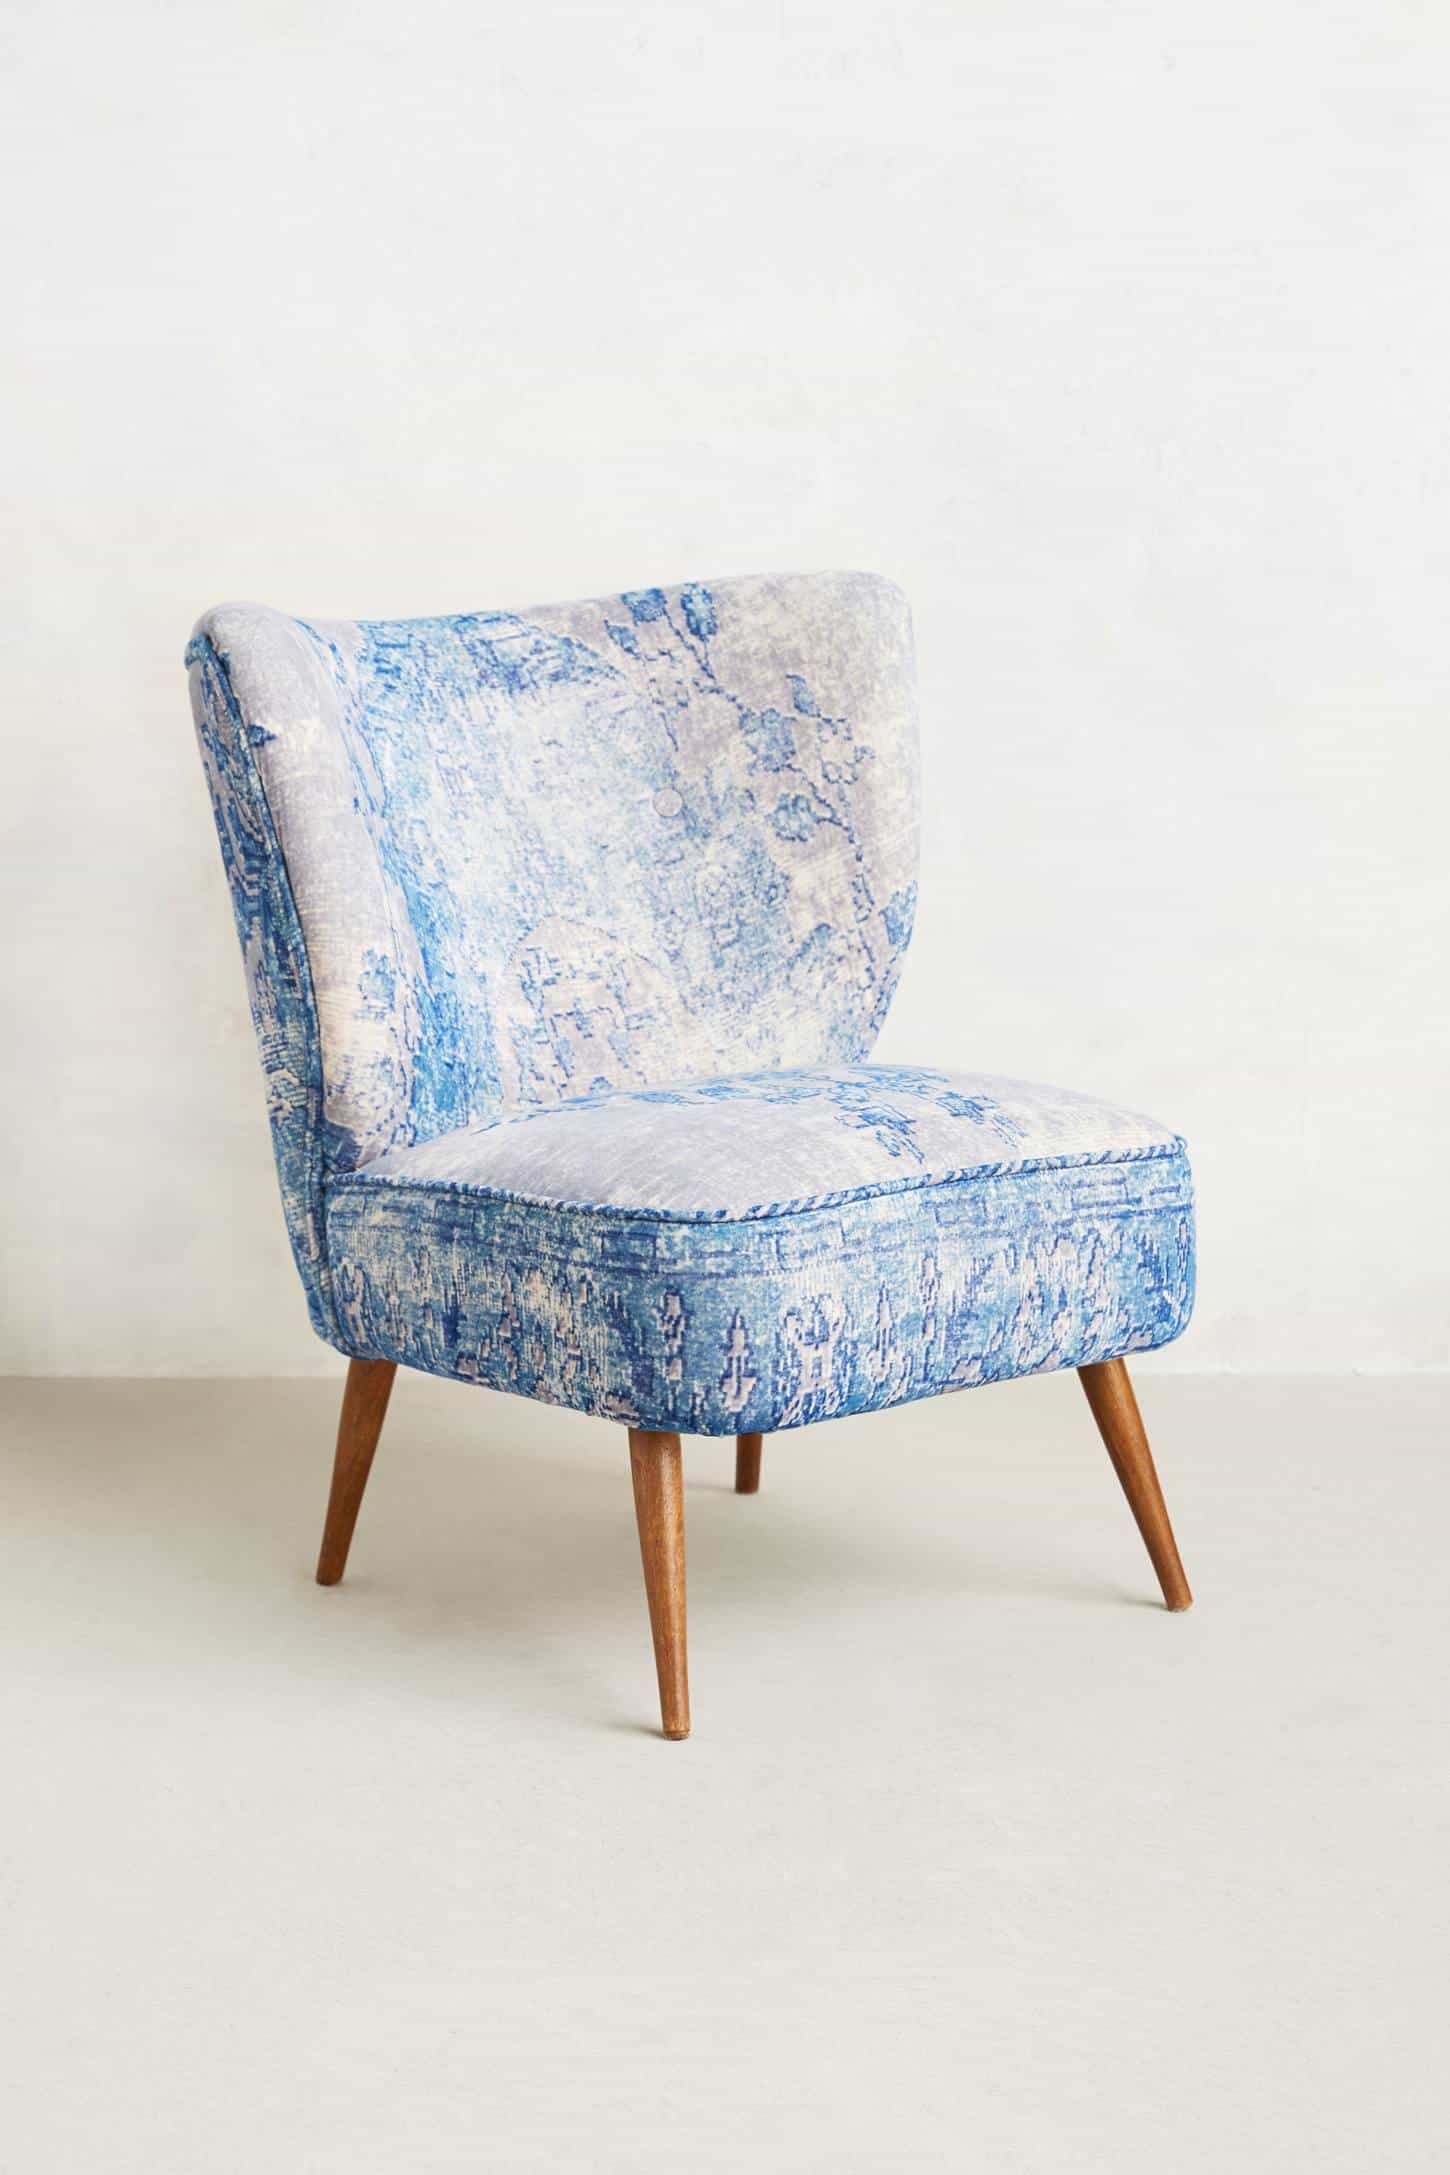 These Washed Velvet Beauties Are Moresque Chairs By